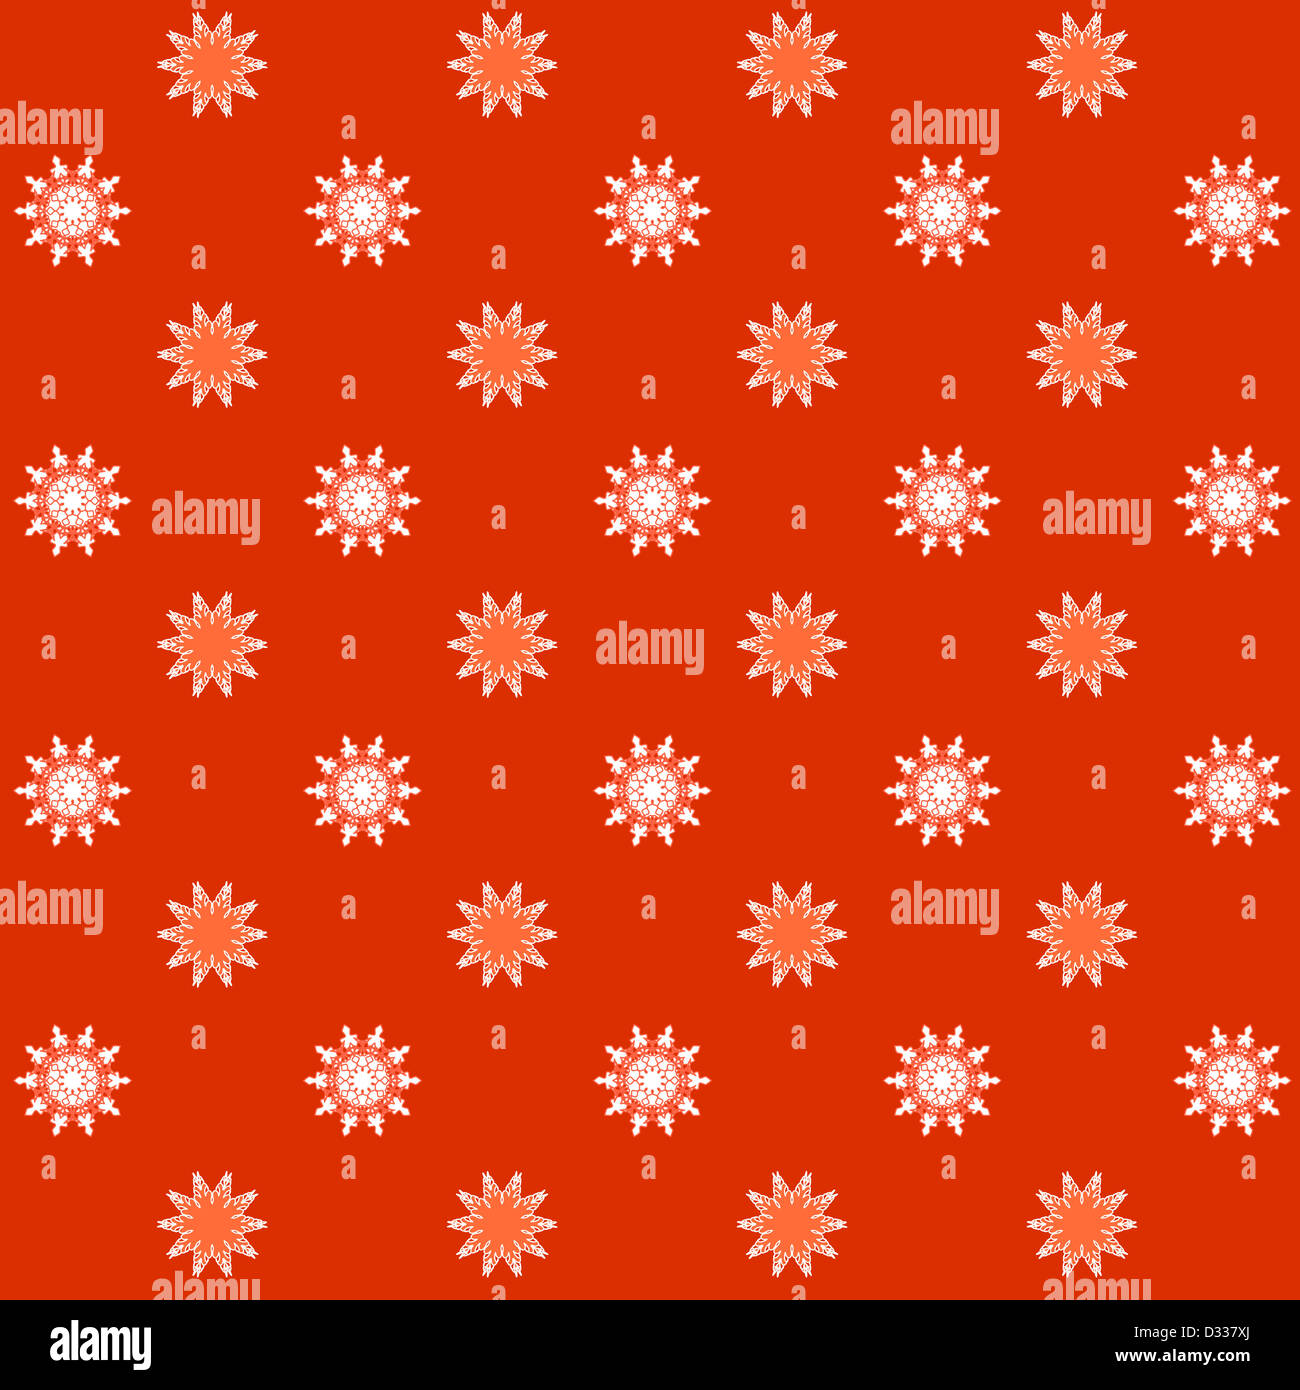 Artistic floral pattern on orange Stock Photo